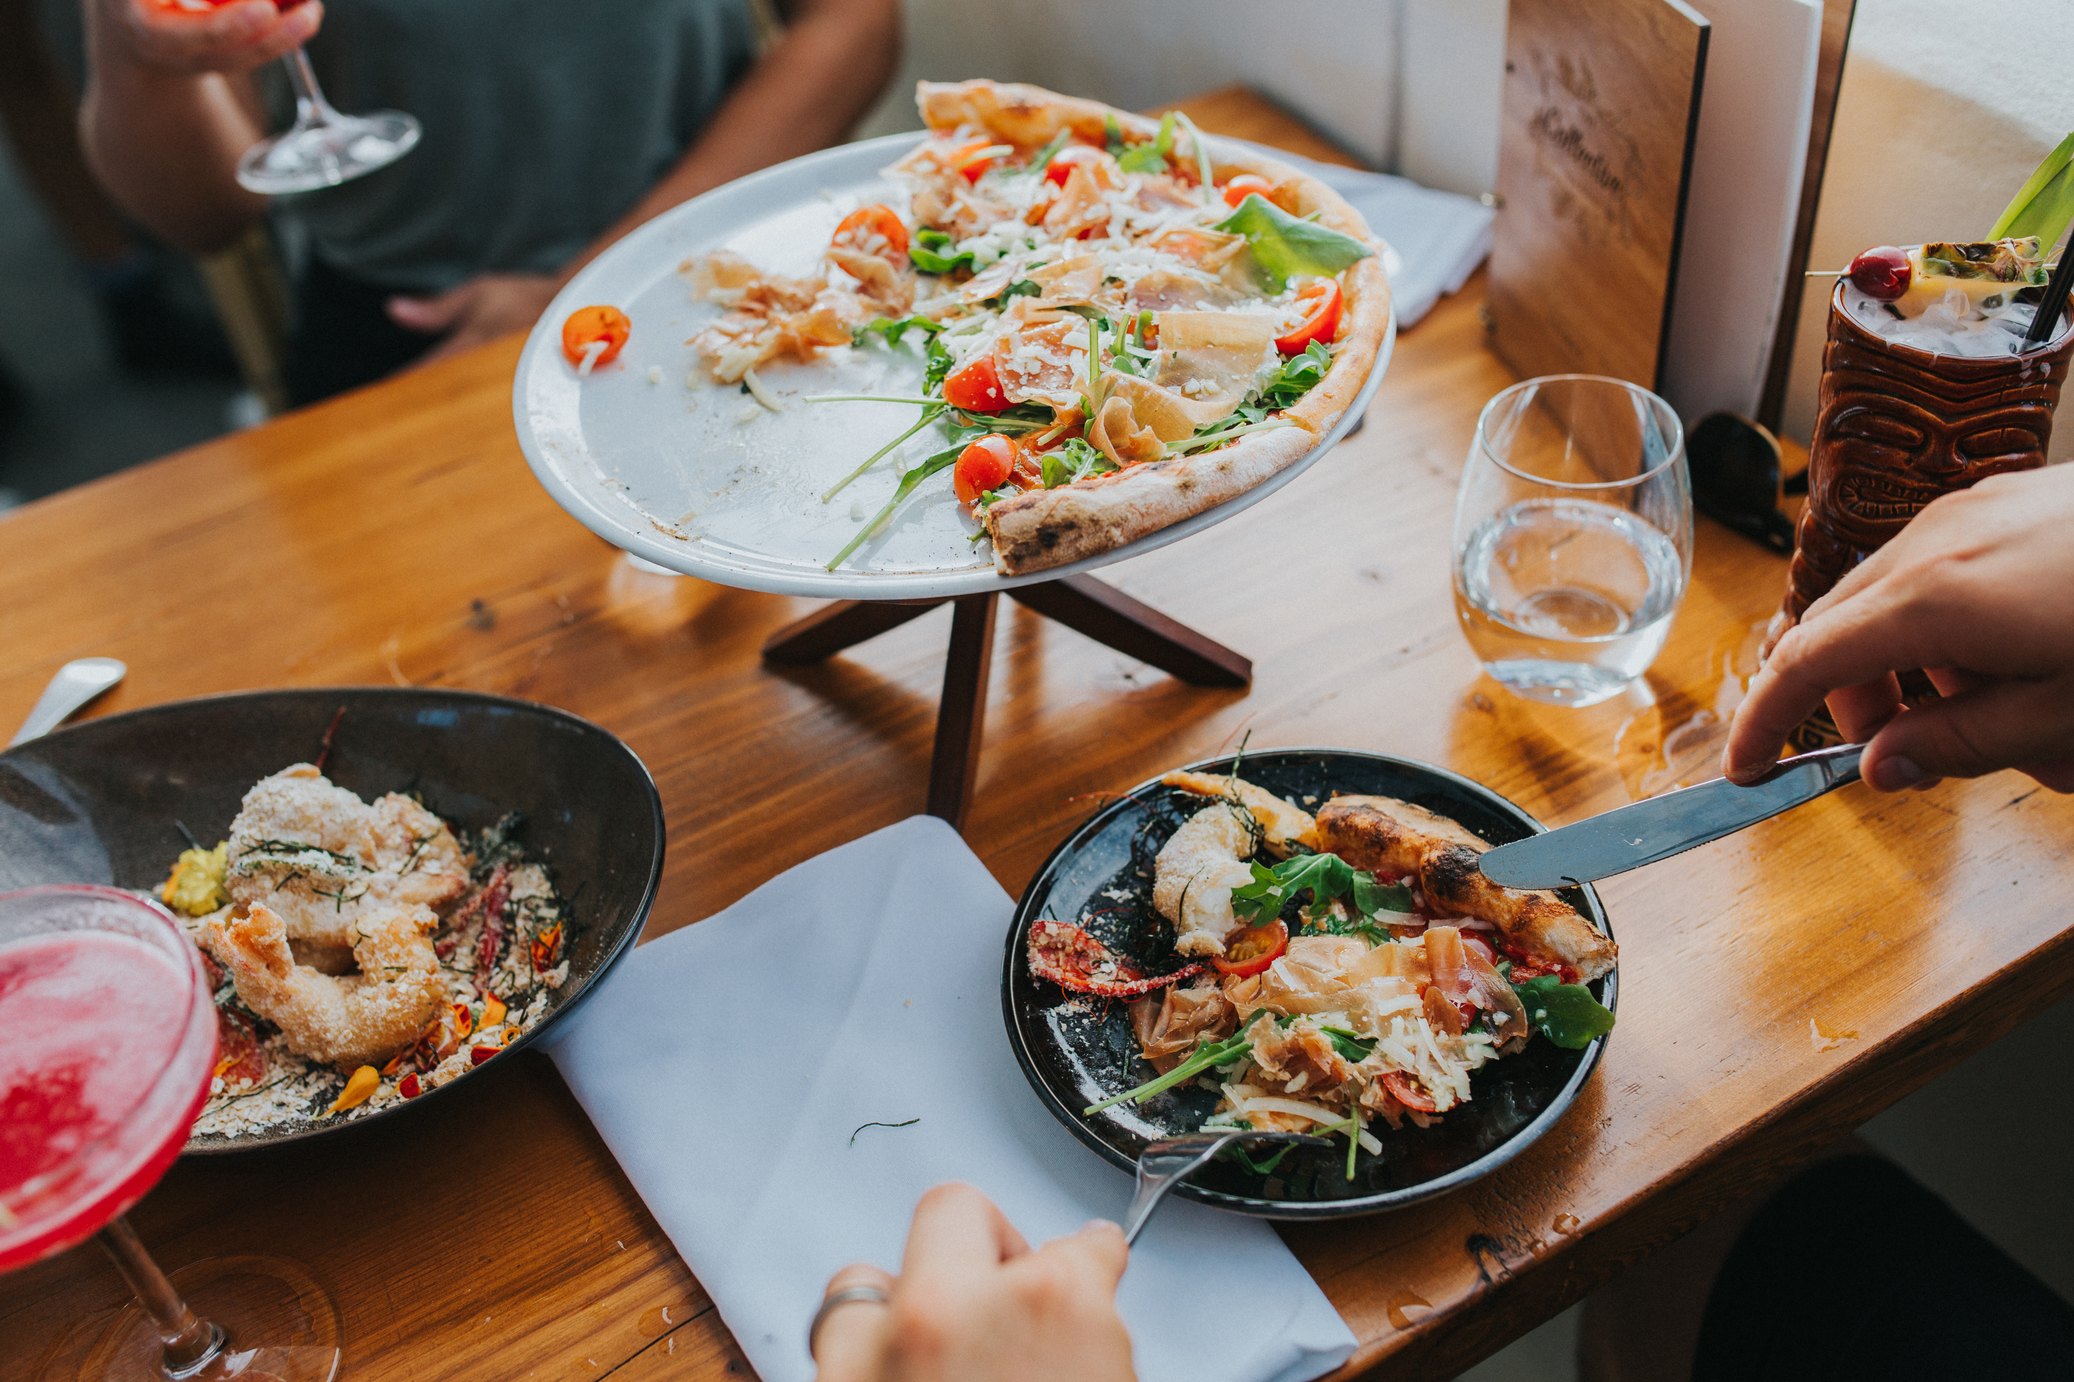 The-Collective-Palm-Beach-plate-of-pizza-and-seafood-2